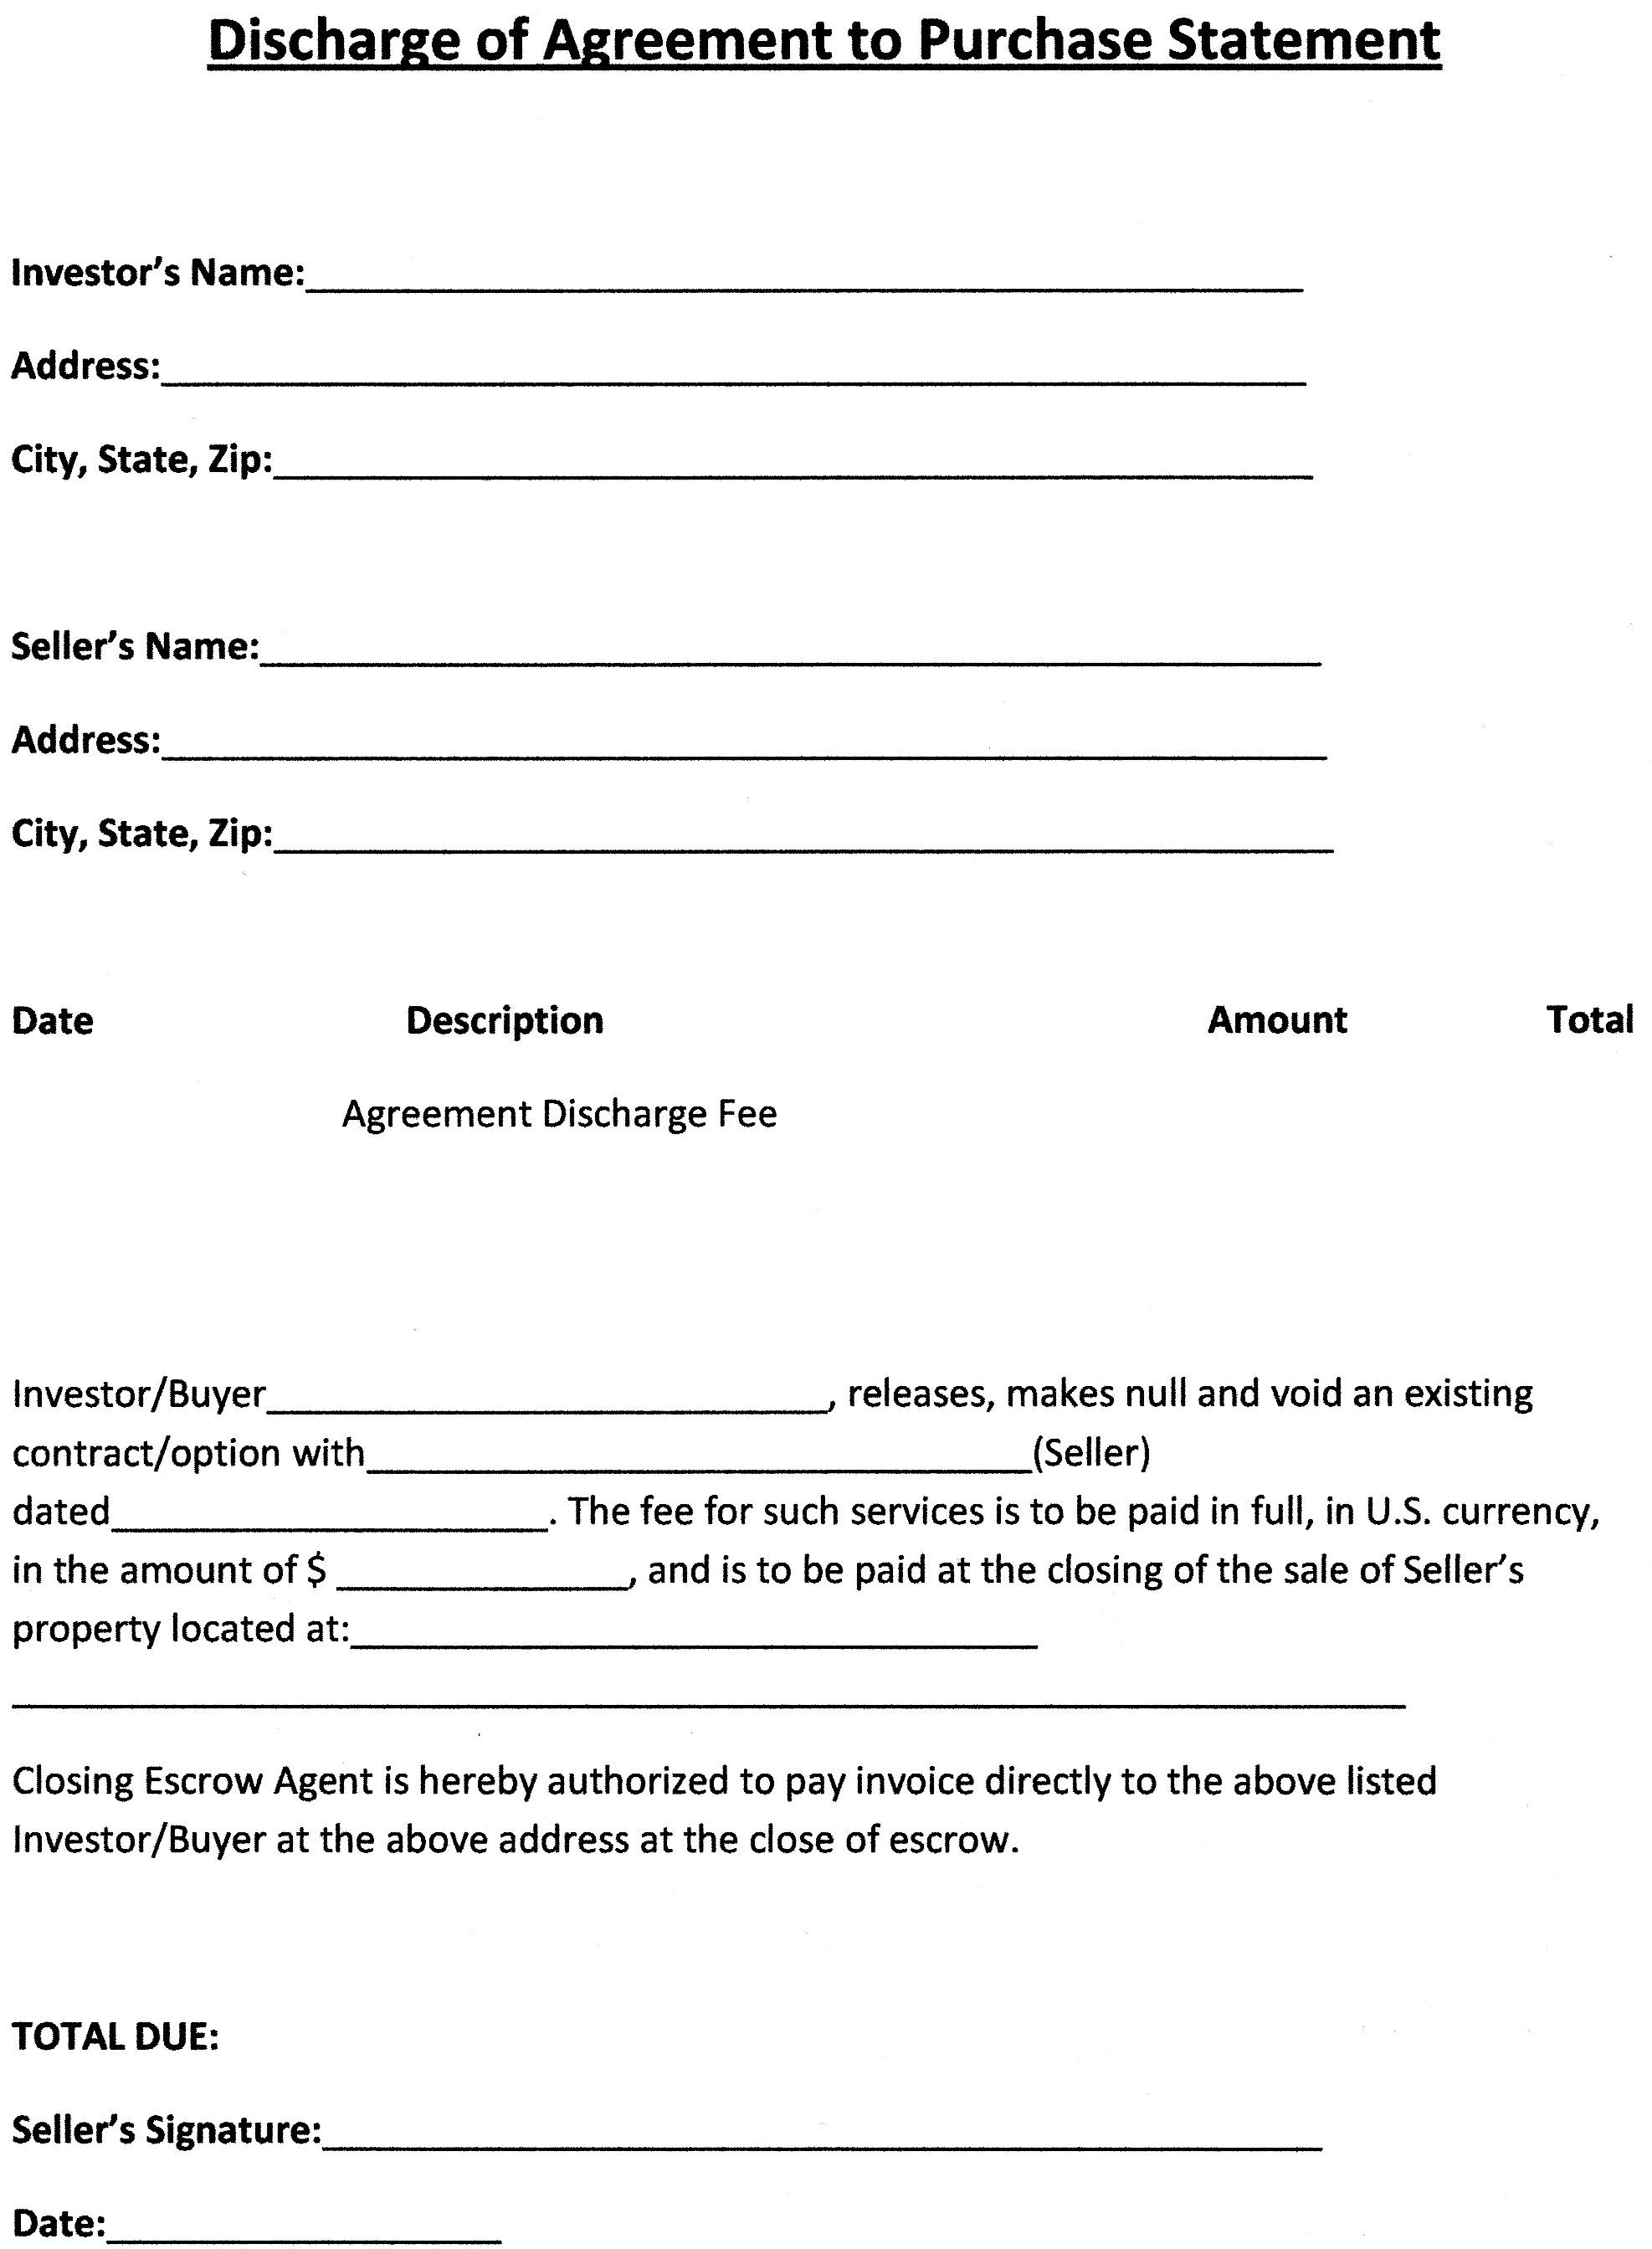 Purchase Agreement Template | http://webdesign14.com ...